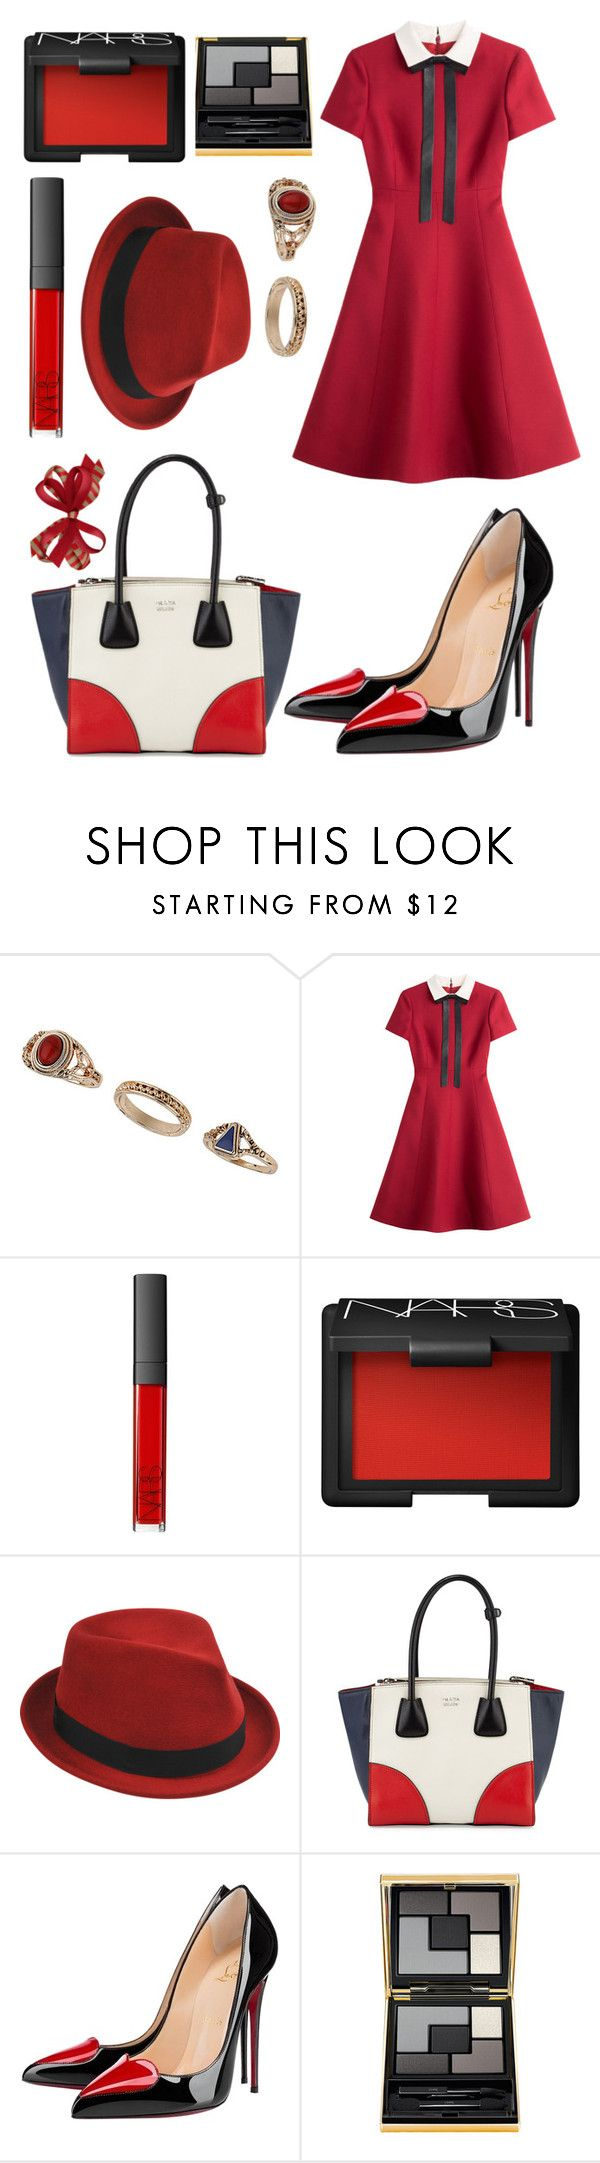 """""""Untitled 383"""" by cattstyles-delenfent ❤ liked on Polyvore featuring Miss Selfridge, Valentino, NARS Cosmetics, Stetson, Prada, Christian Louboutin, Yves Saint Laurent, women's clothing, women and female"""